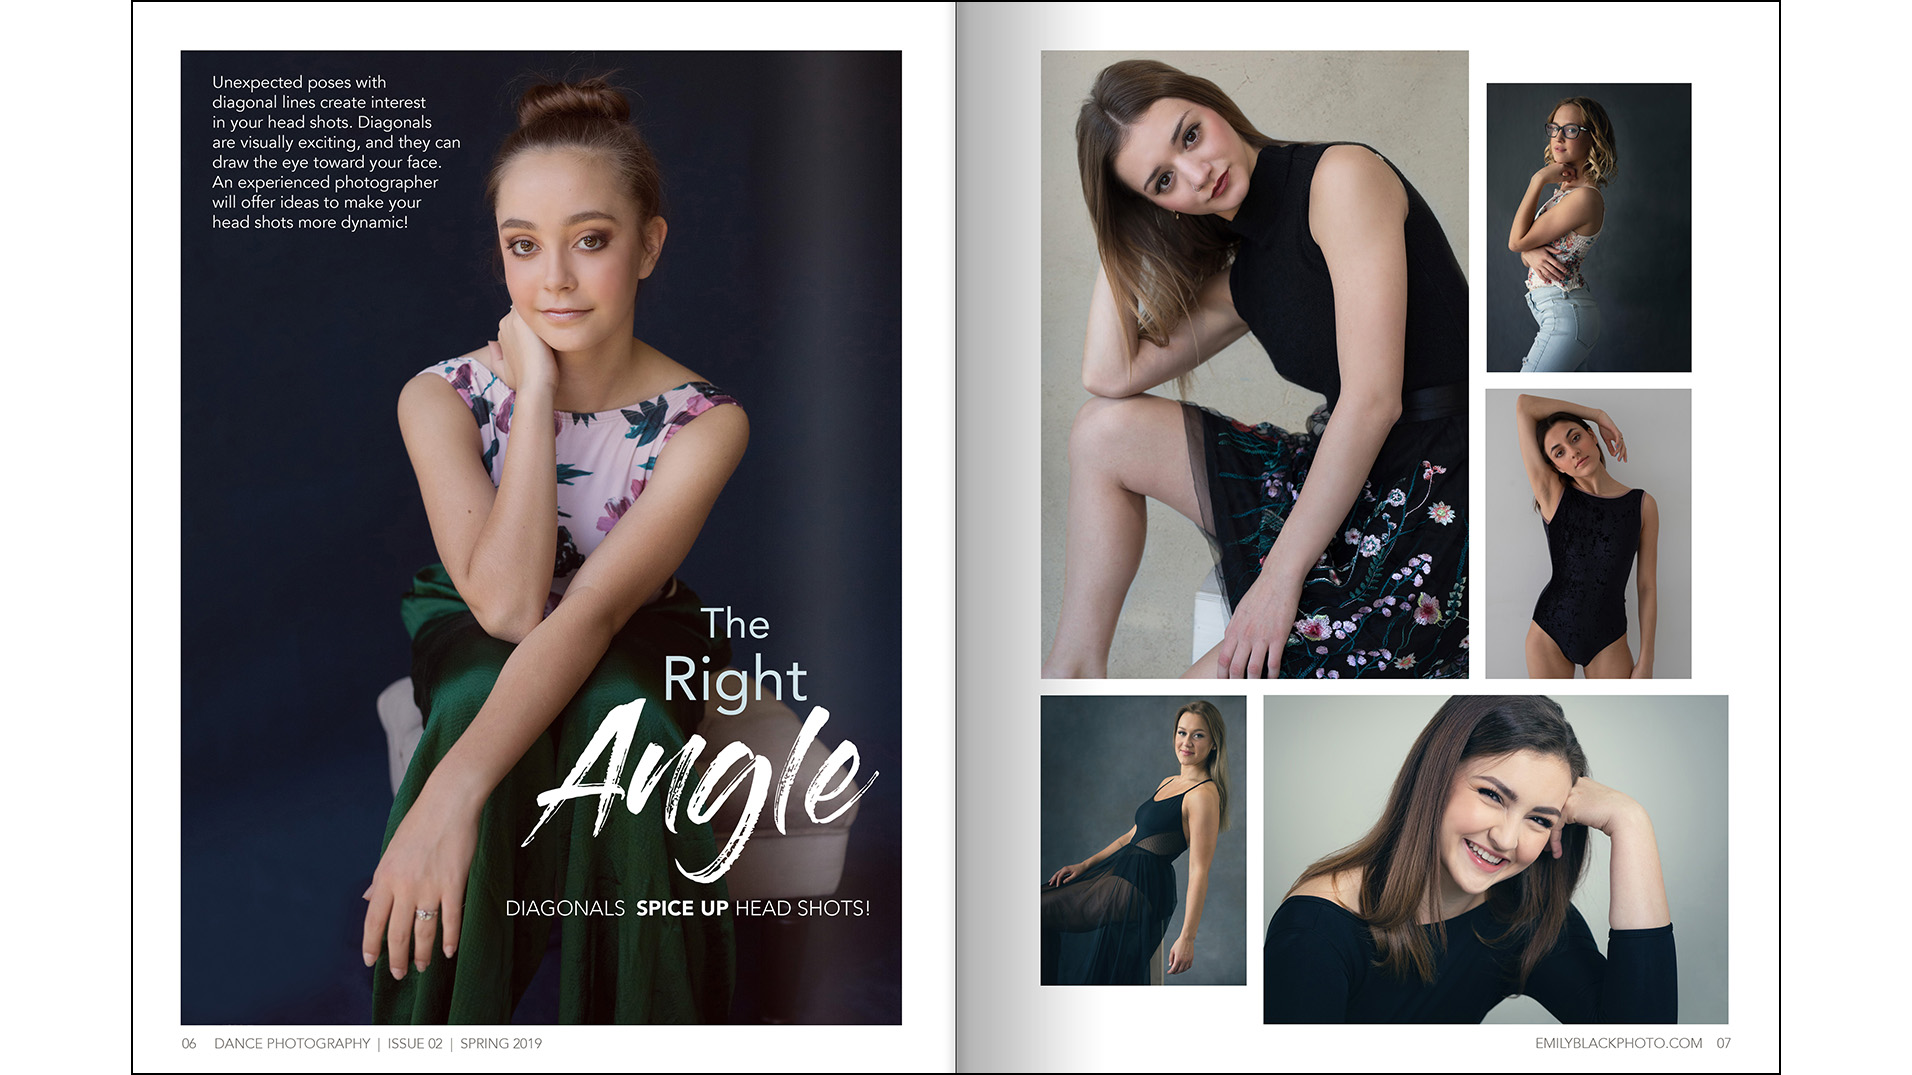 Head Shot Feature - In every issue, I show ways to improve your dancer's head shots. This one was using diagonal lines to create interest.